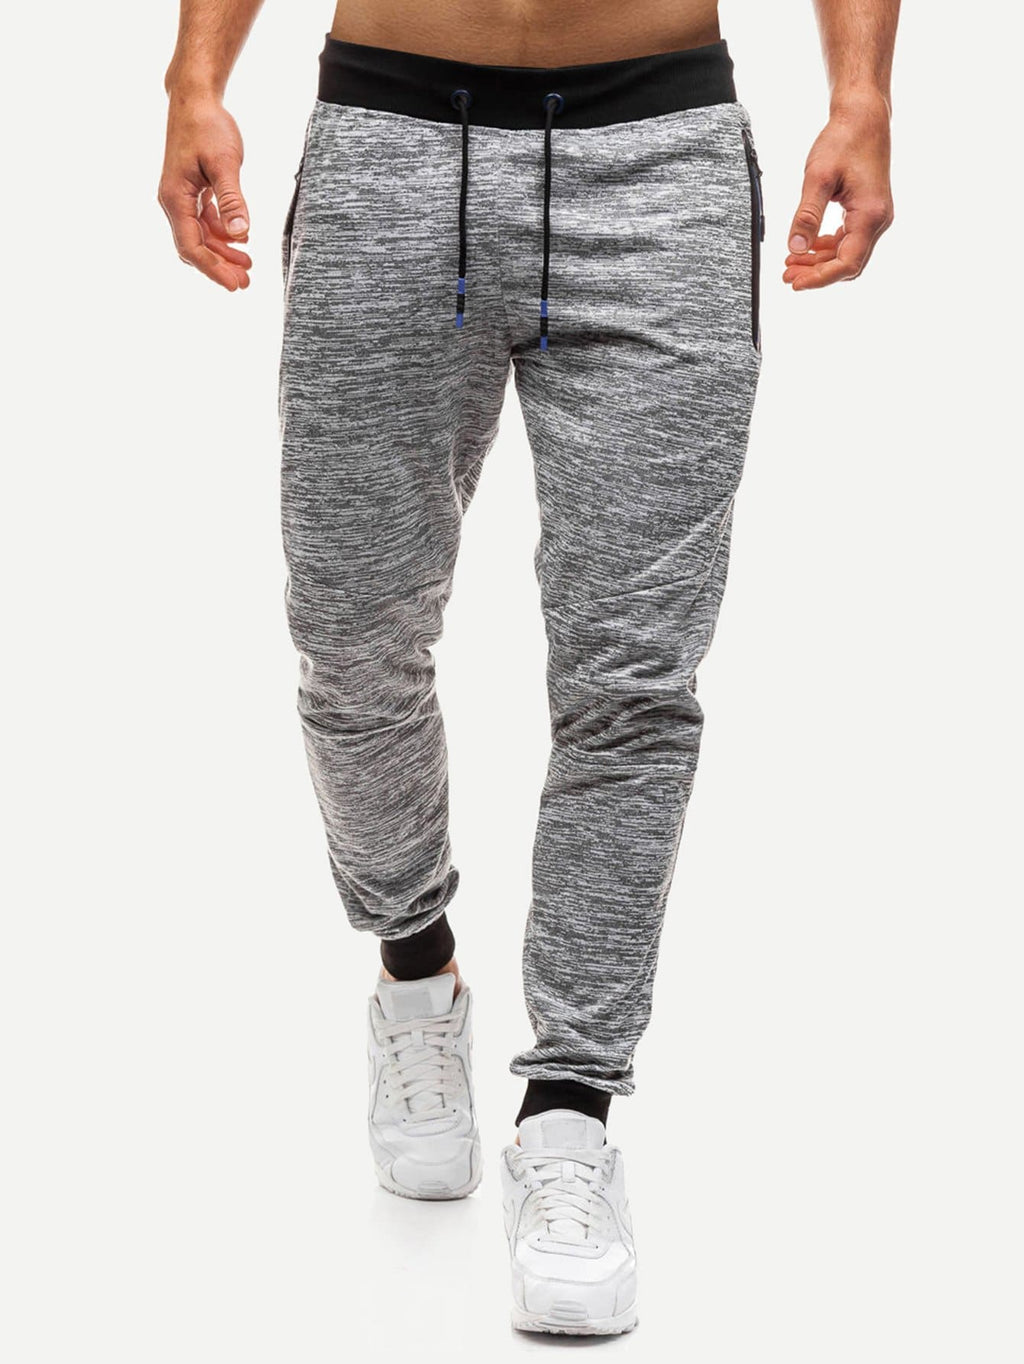 Men's Joggers - Space Dye Zipper & Drawstring Detail Pants